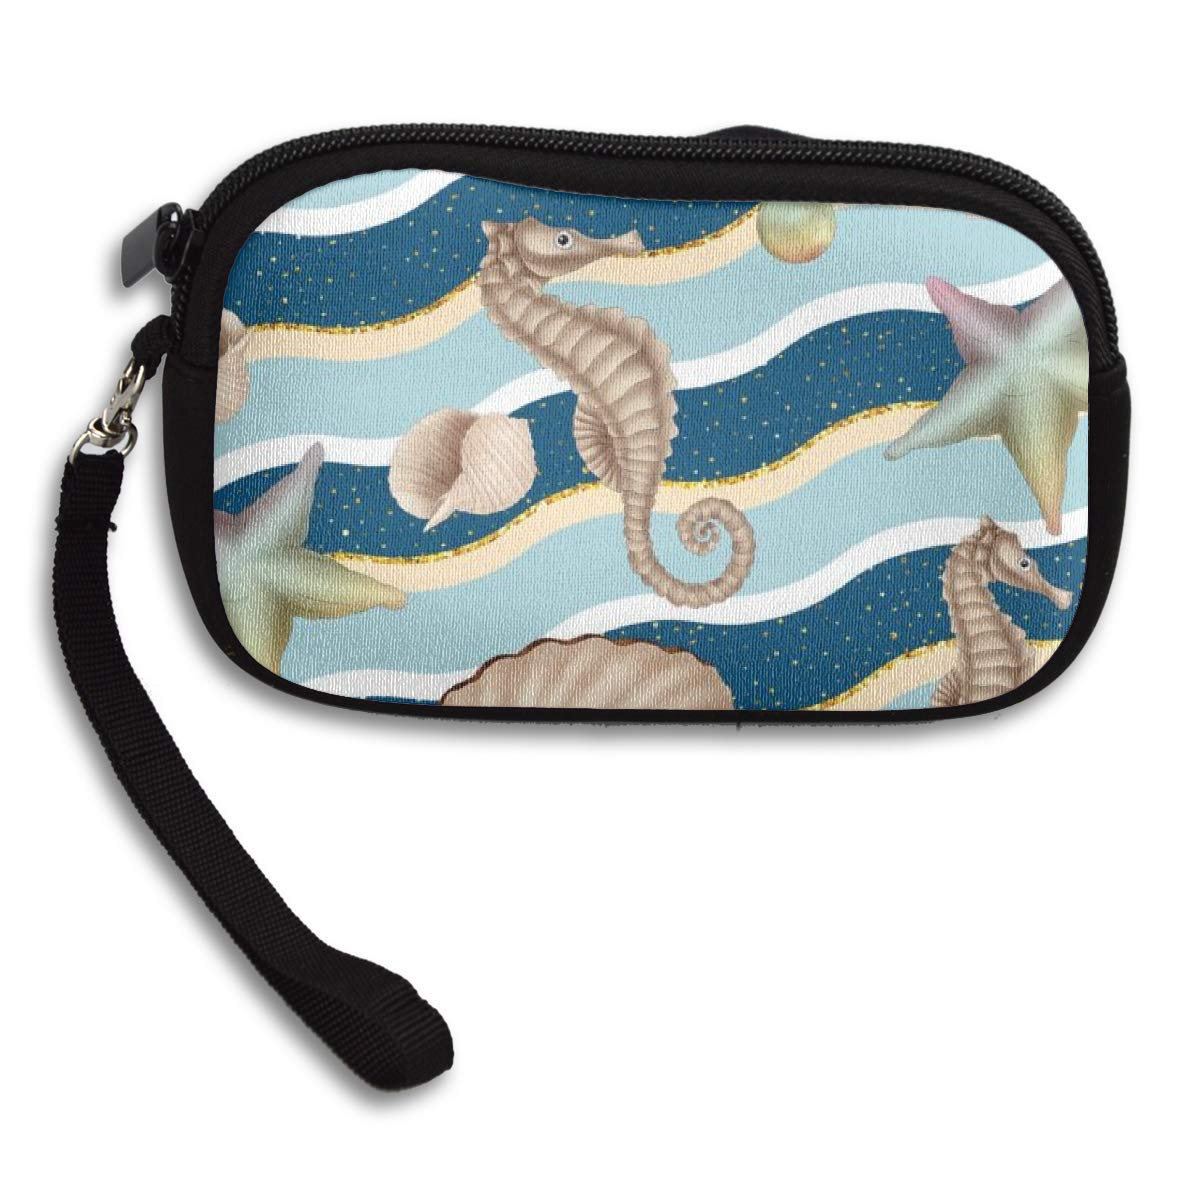 Bubble Hippocampus Starfish Pearl Mussel Sea Coin Pouch Clutch Purse Wristlet Wallet Phone Card Holder Handbag